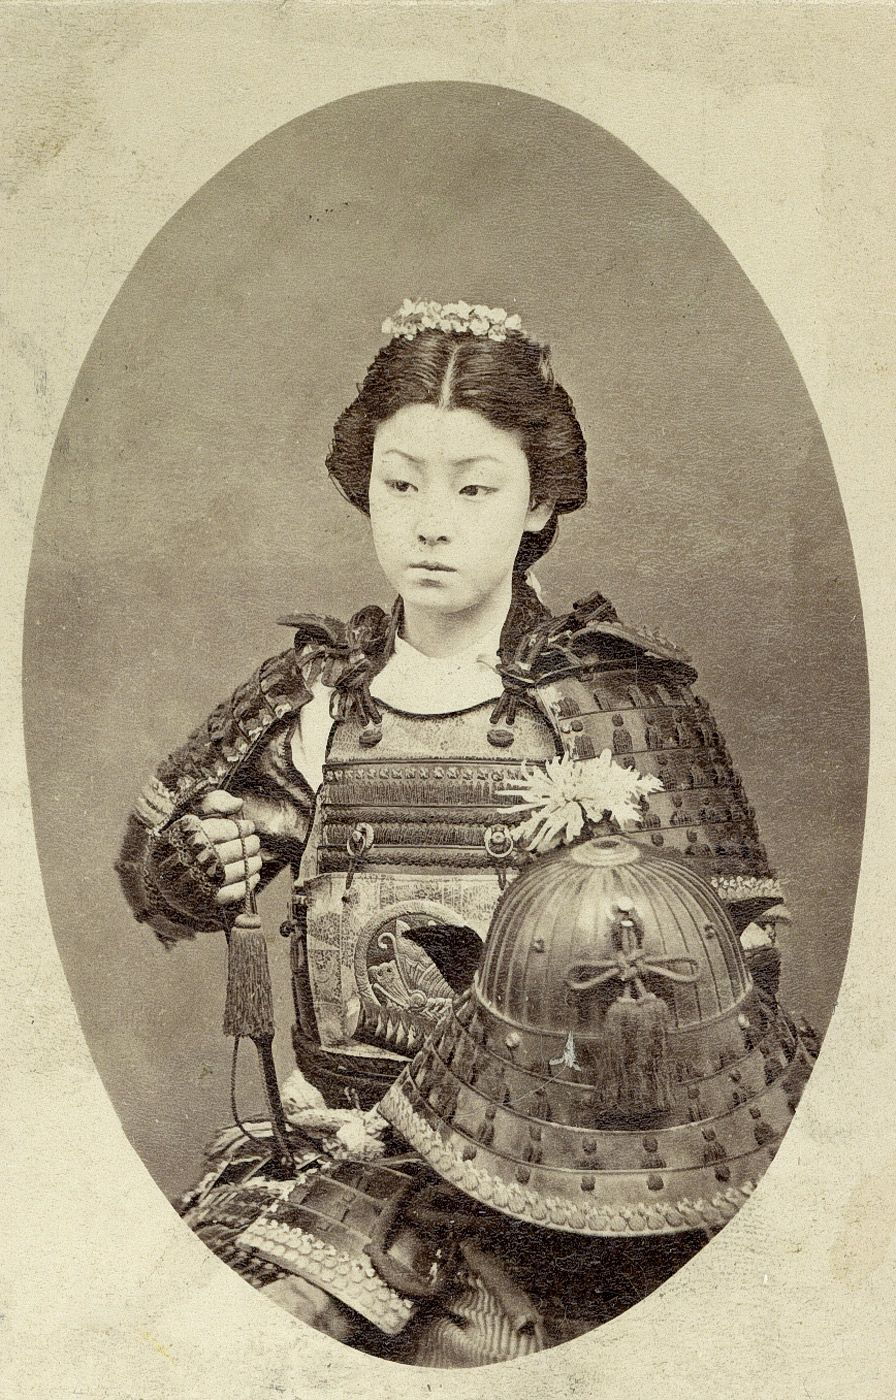 Unknown photographer, Japan 1870s